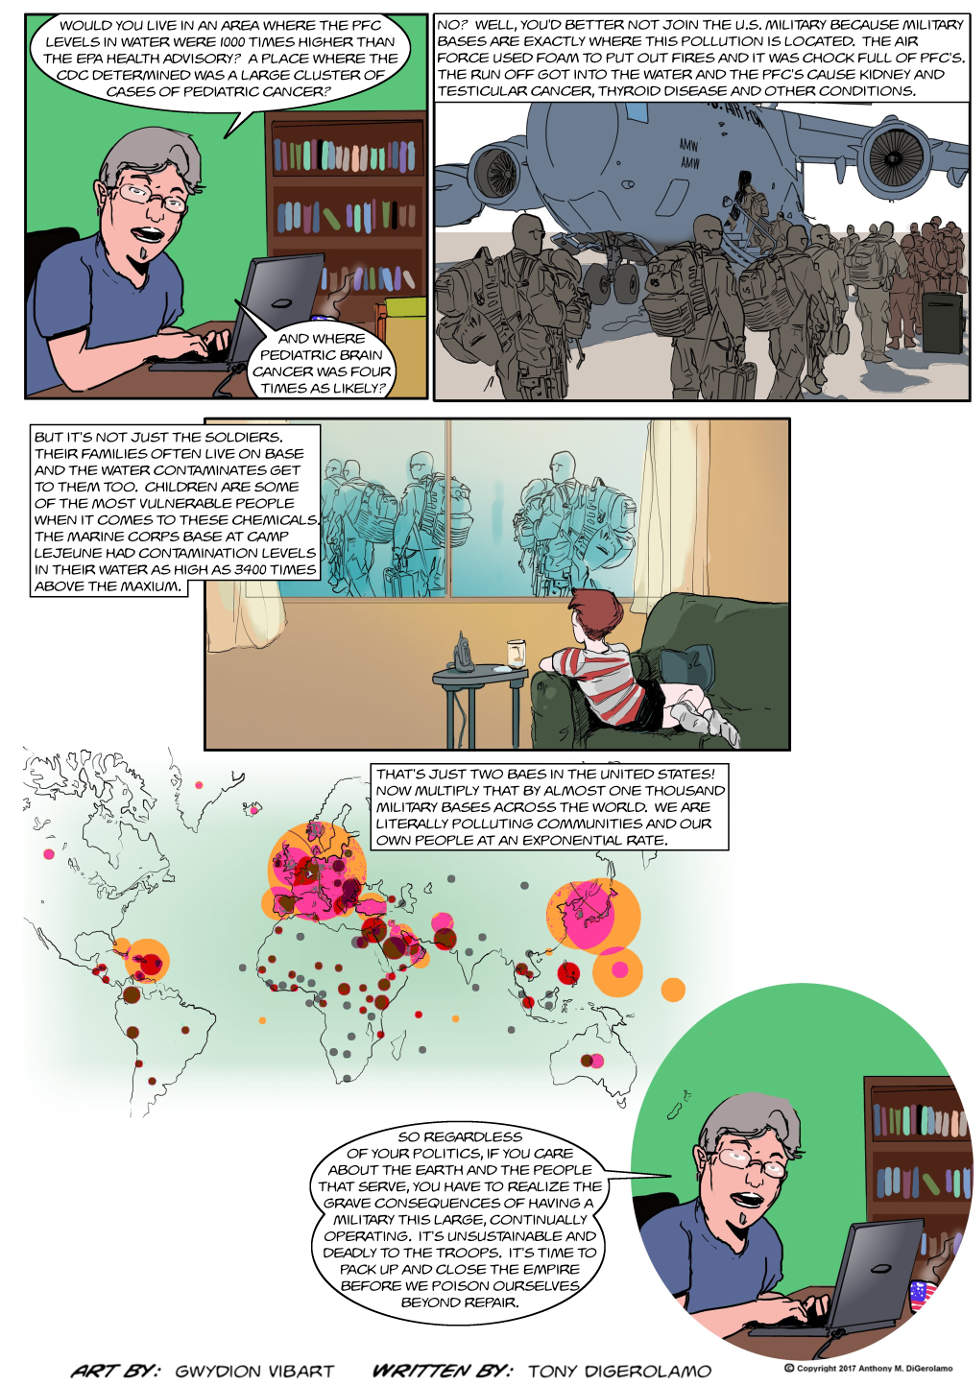 The Antiwar Comic:  Where Would You Live?